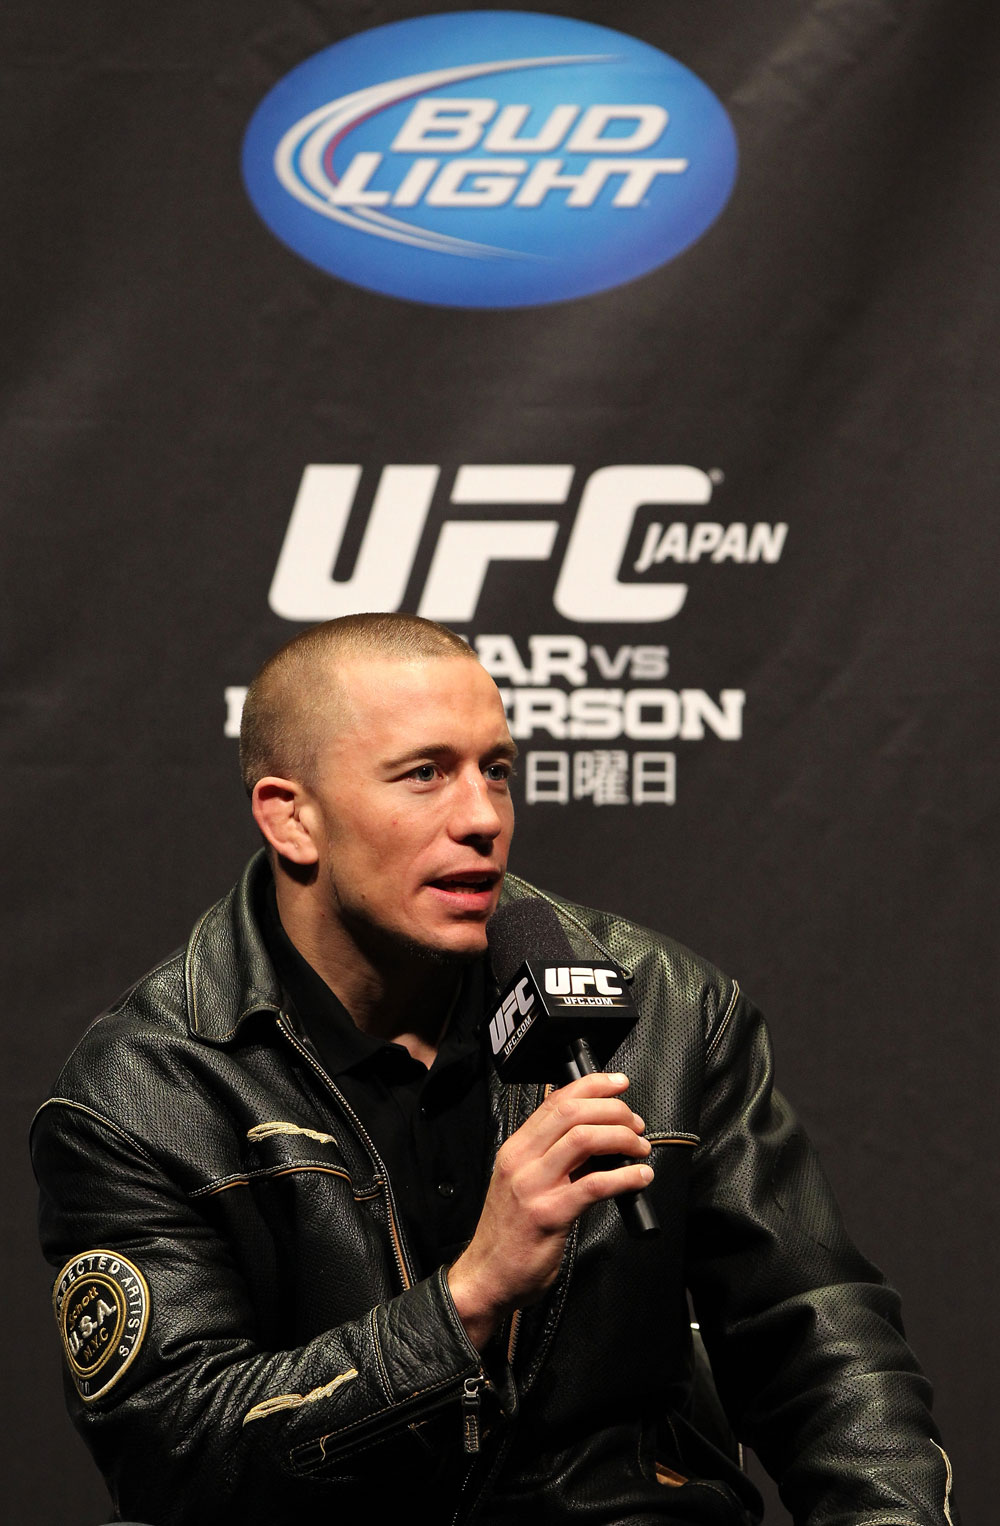 SAITAMA, JAPAN - FEBRUARY 25:  UFC Welterweight Champion Georges St-Pierre takes part in a Q&amp;A session before the official UFC 144 weigh in at the Saitama Super Arena on February 25, 2012 in Saitama, Japan.  (Photo by Josh Hedges/Zuffa LLC/Zuffa LLC via Getty Images) *** Local Caption *** Georges St-Pierre